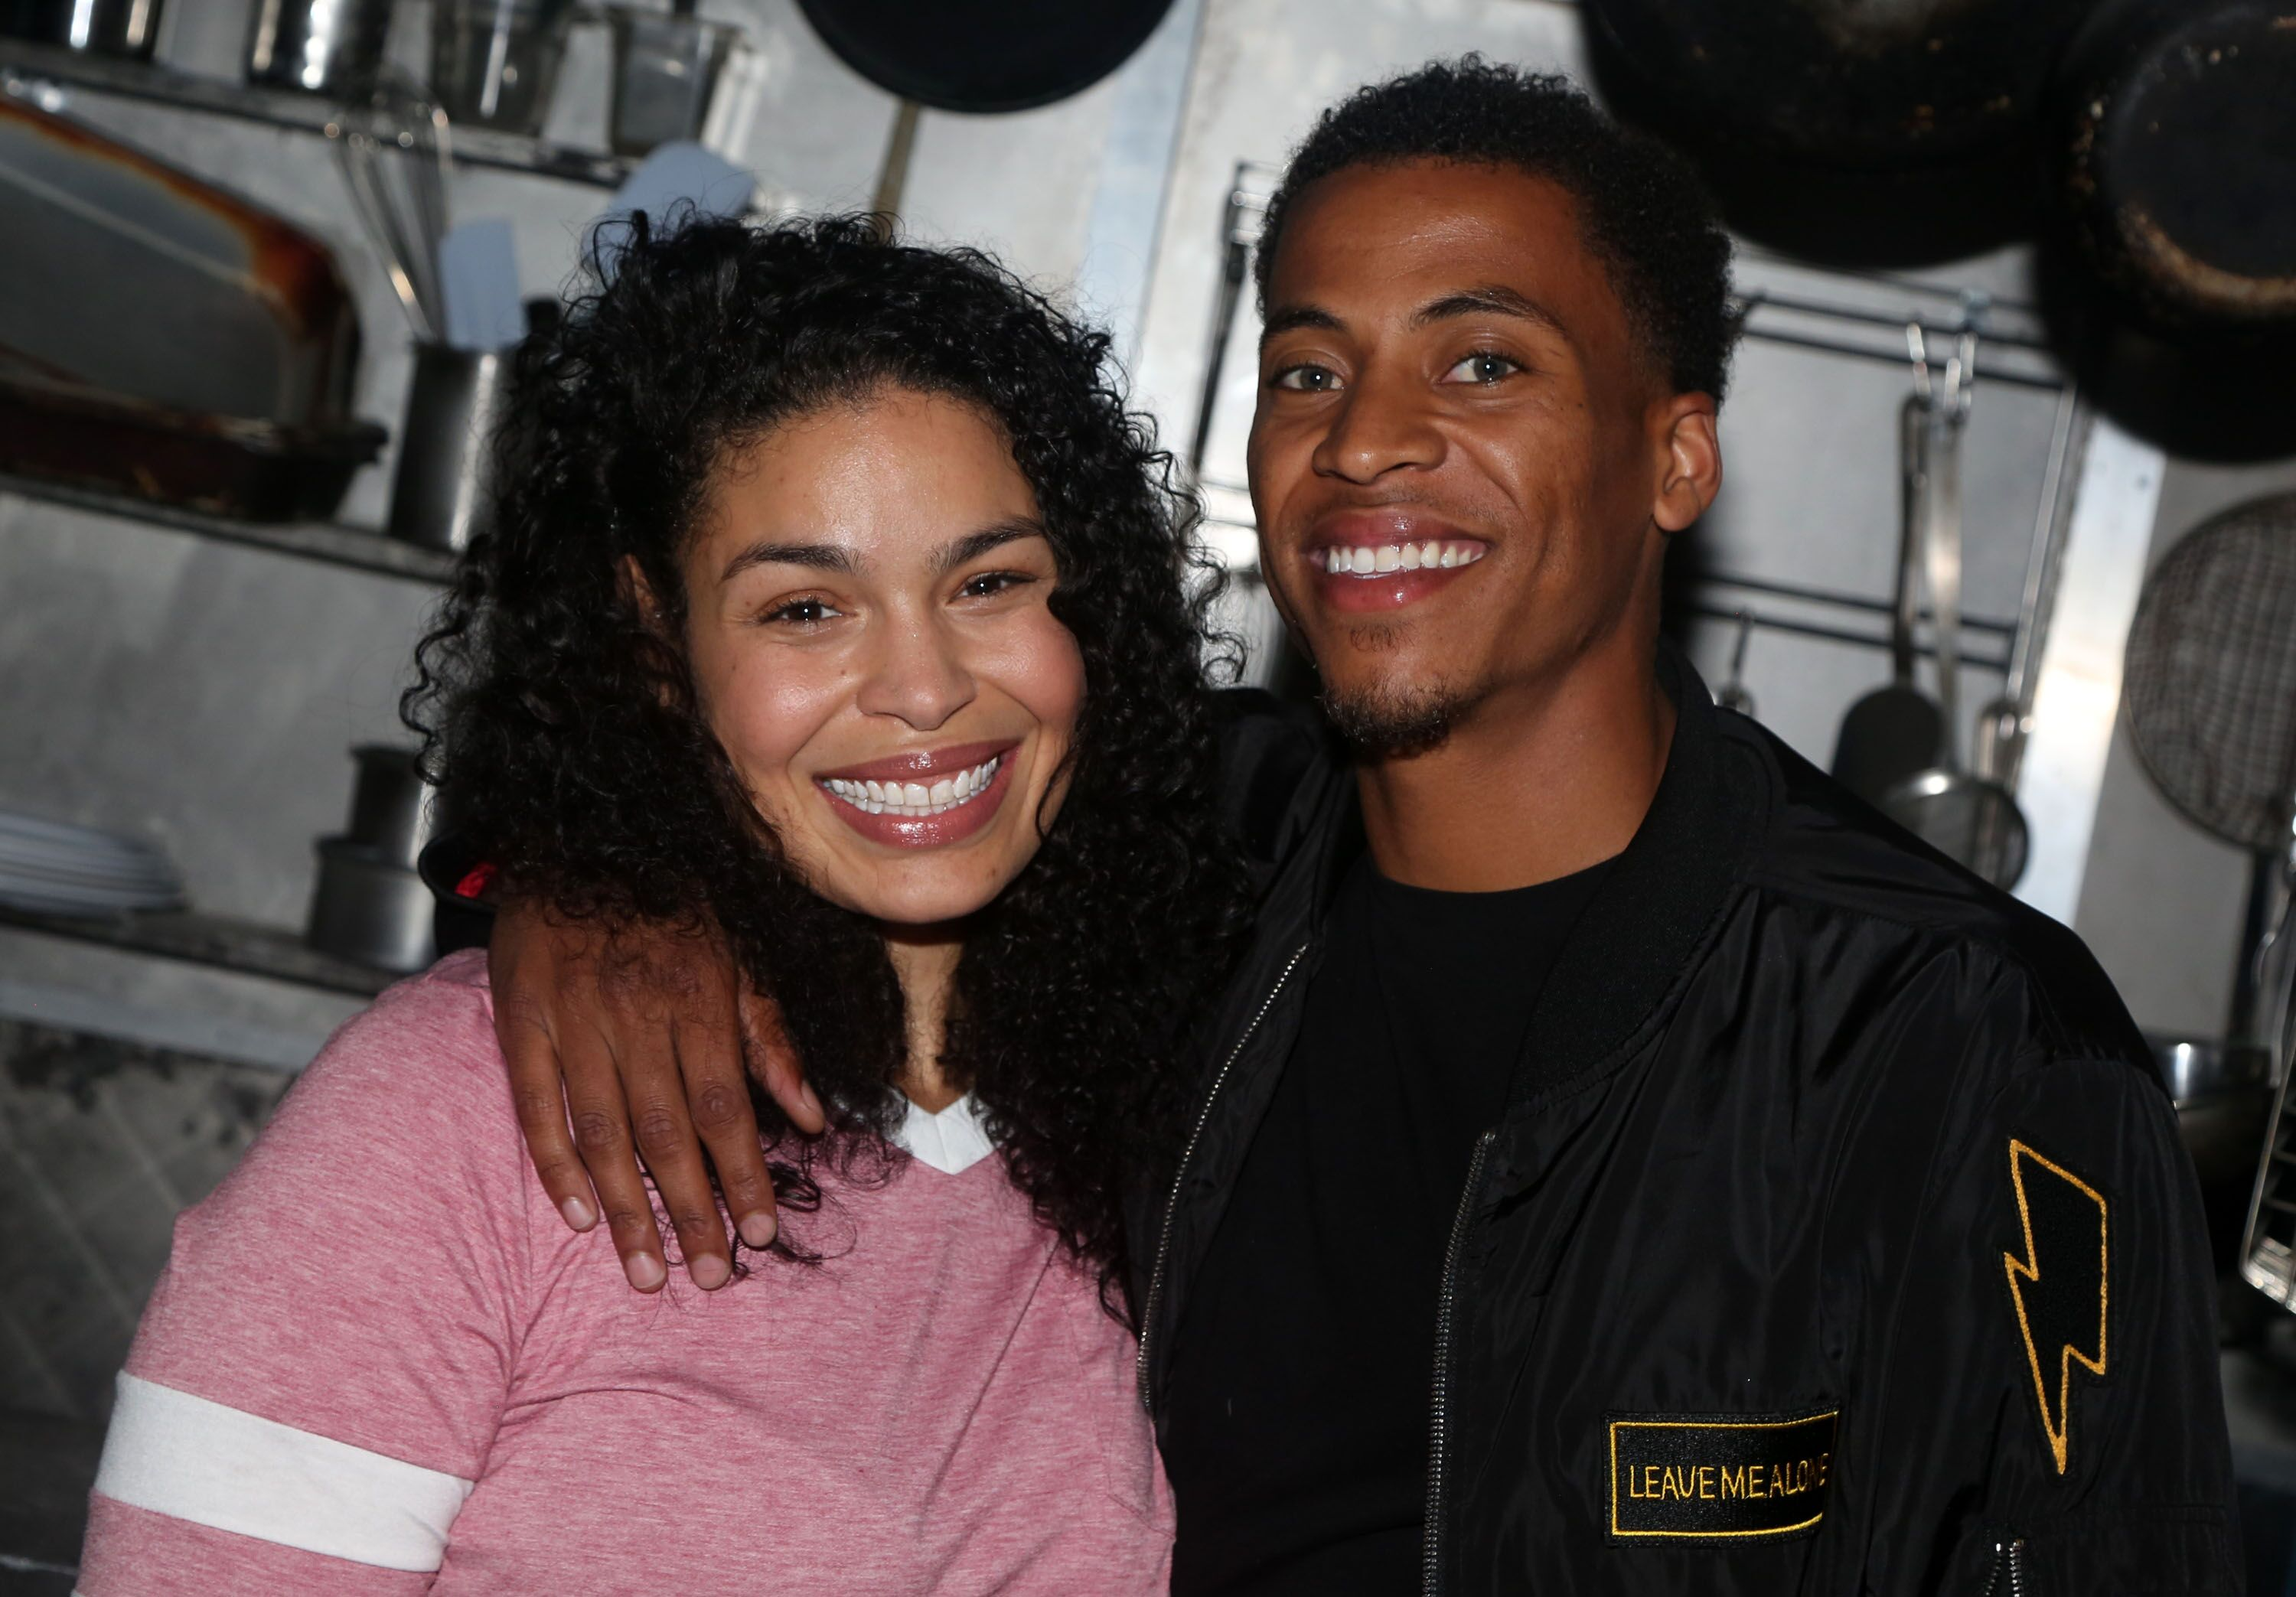 """Jordin Sparks and Dana Isaiah pose backstage as Sparks joins the cast of """"Waitress"""" on Broadway at The Brooks Atkinson Theatre on September 16, 2019 in New York City. 